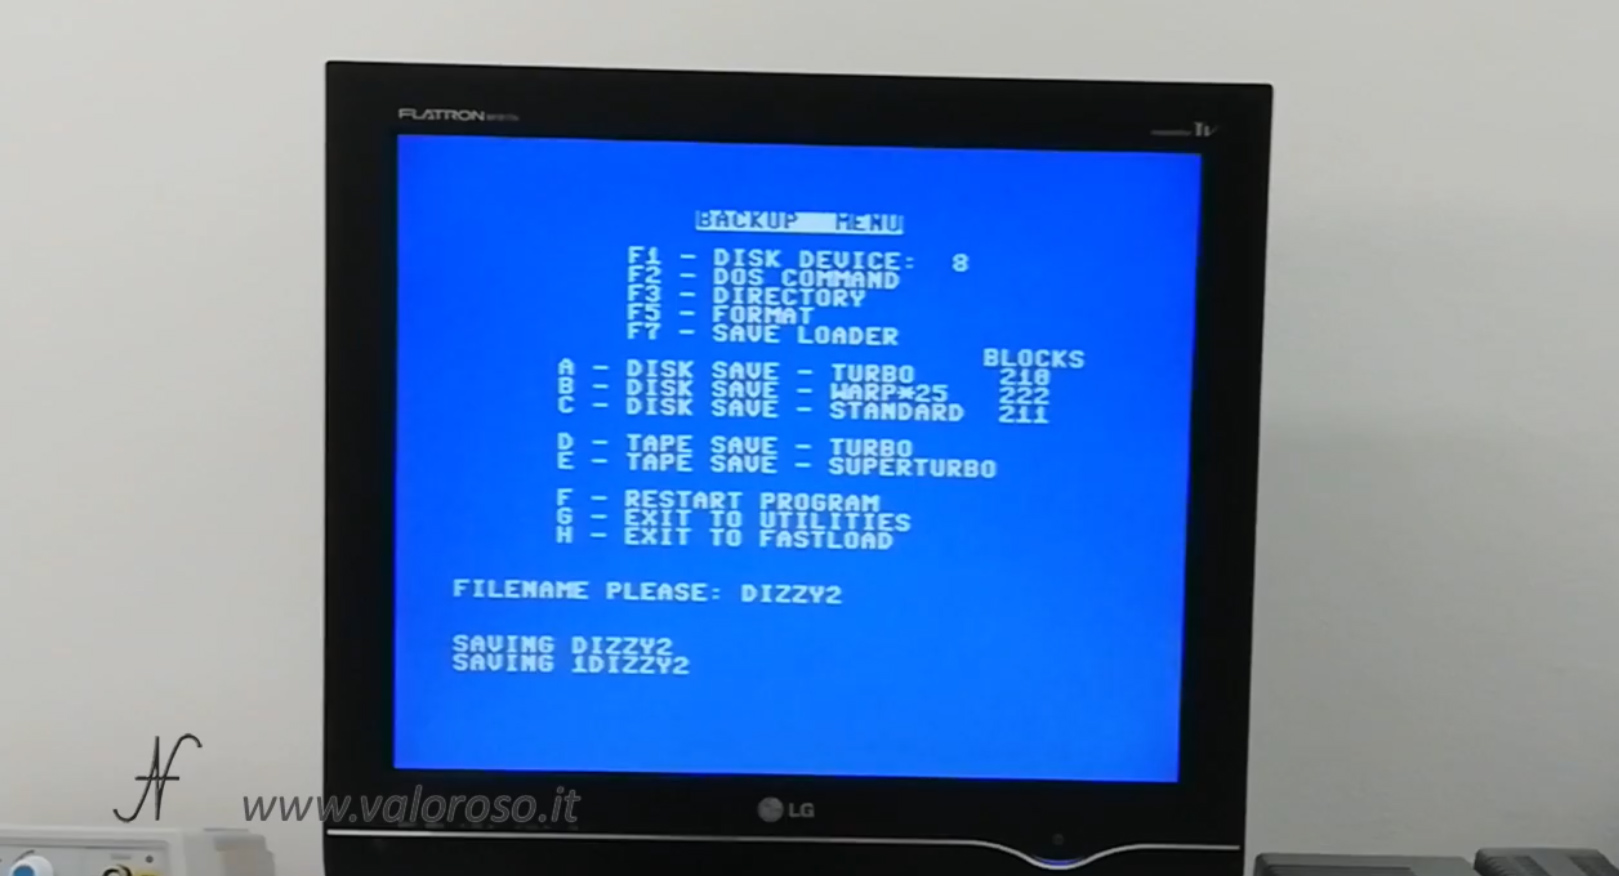 Datel Action Replay, Commodore 64, menu backup, disk save 1541, copia videogioco da cassetta a floppy disk